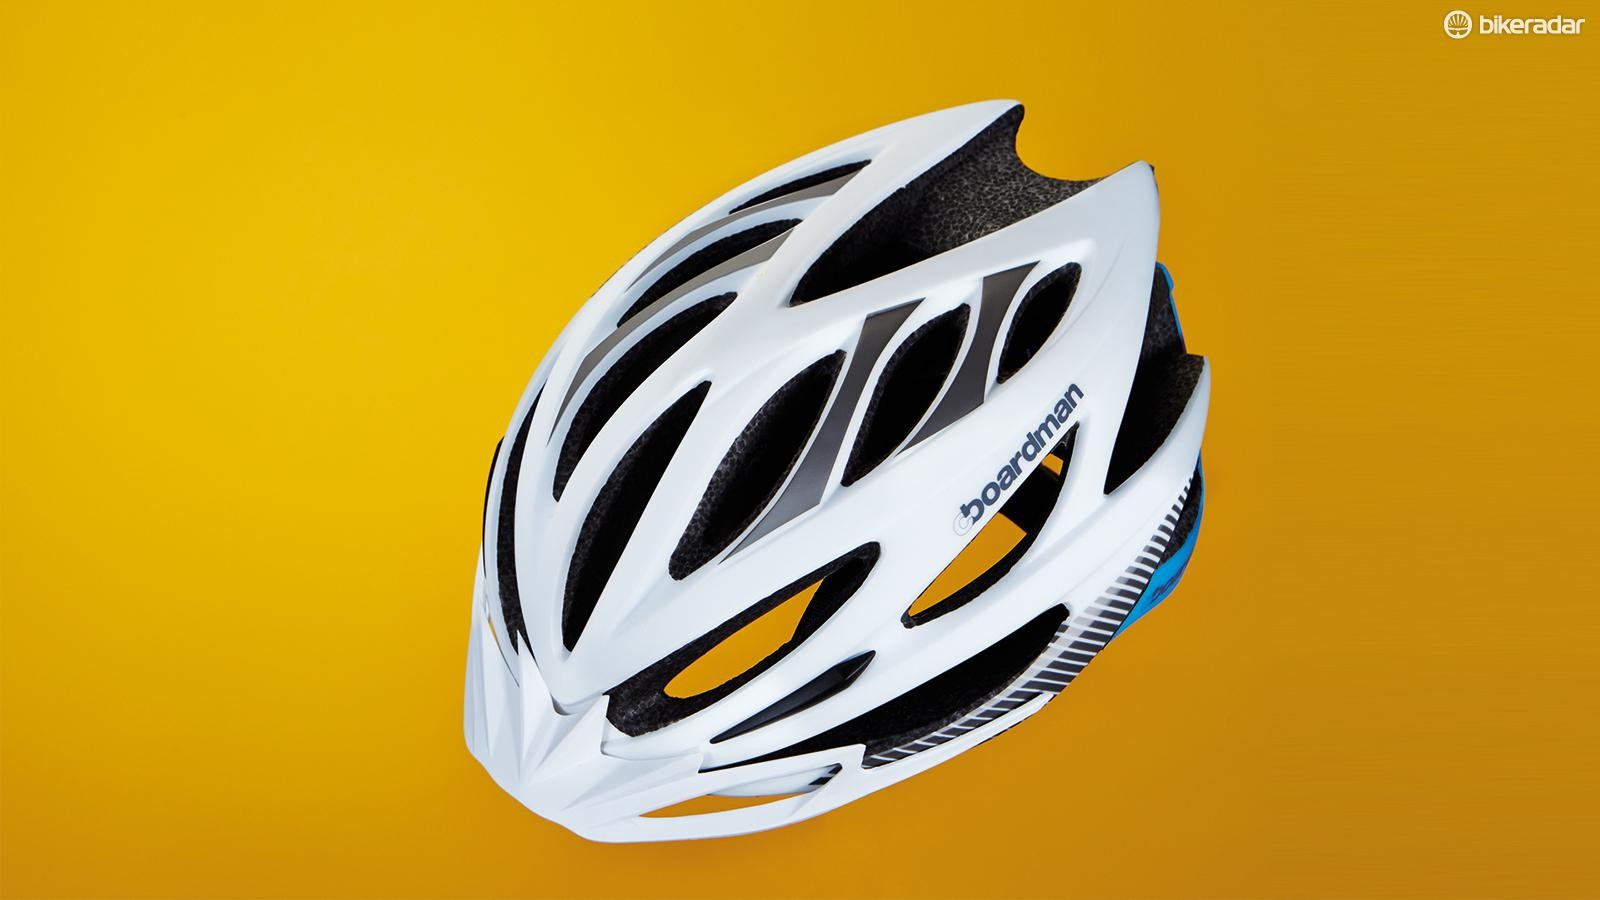 Boardman Team helmet